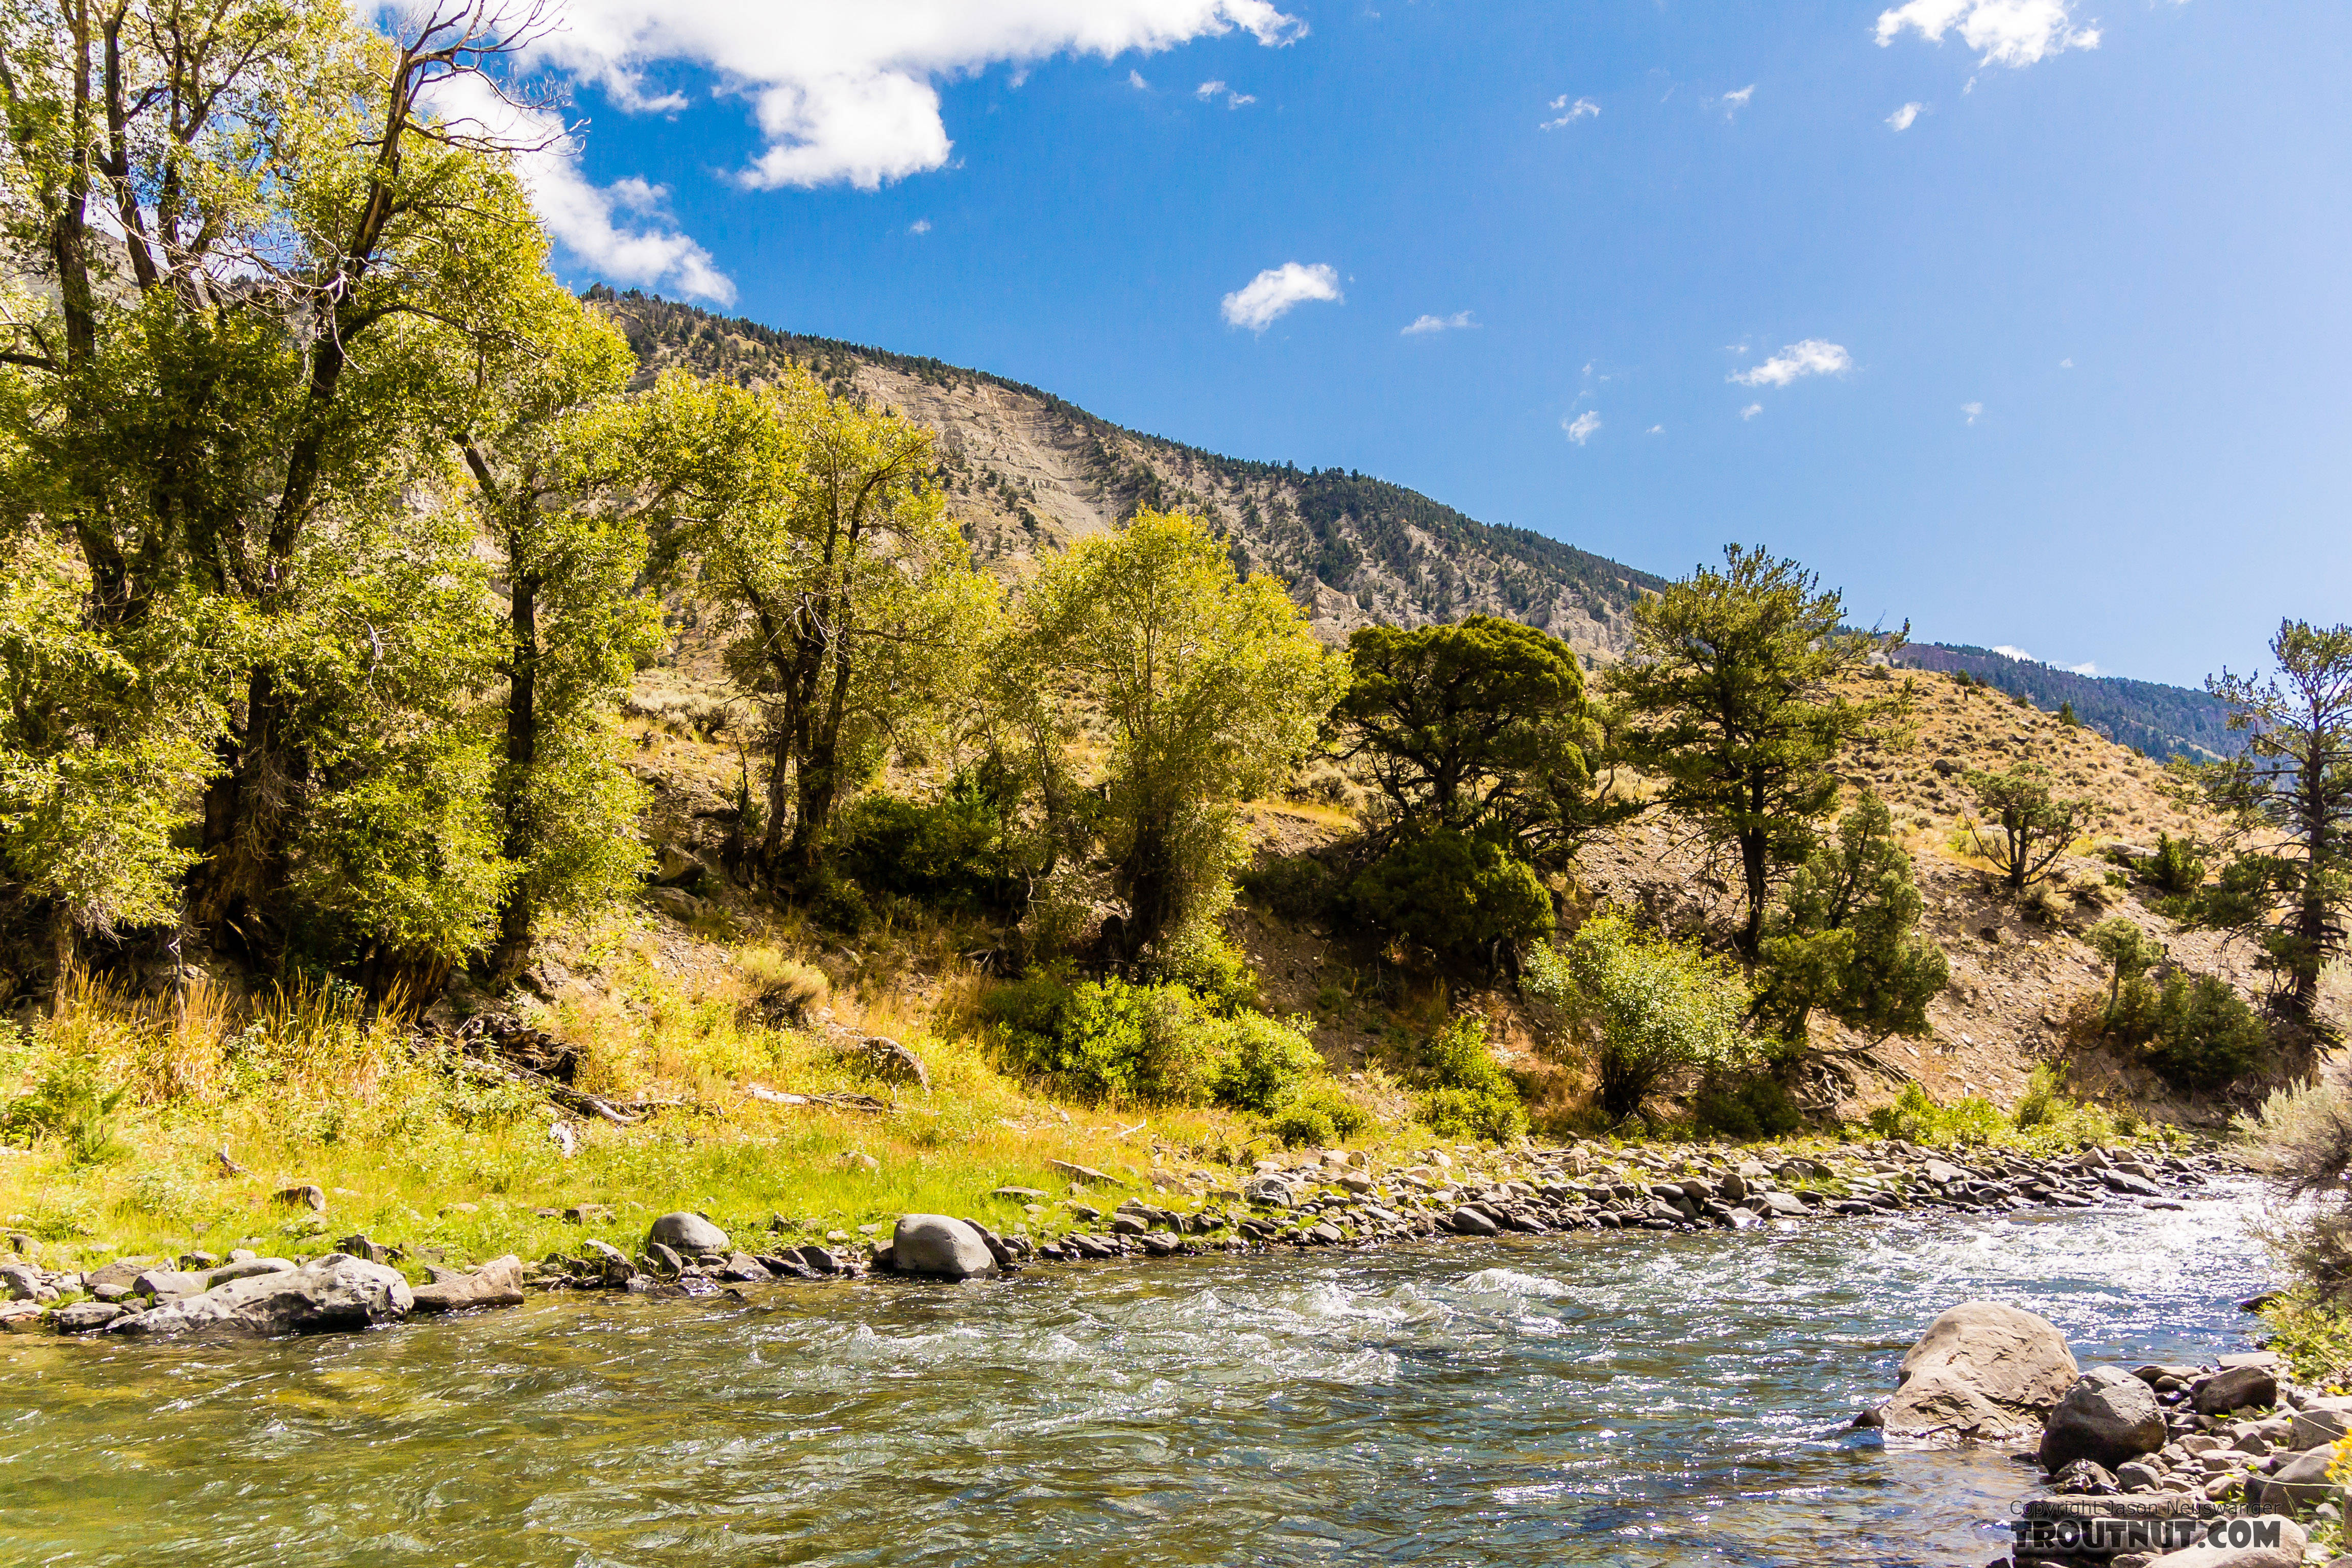 From the Gardner River in Montana.